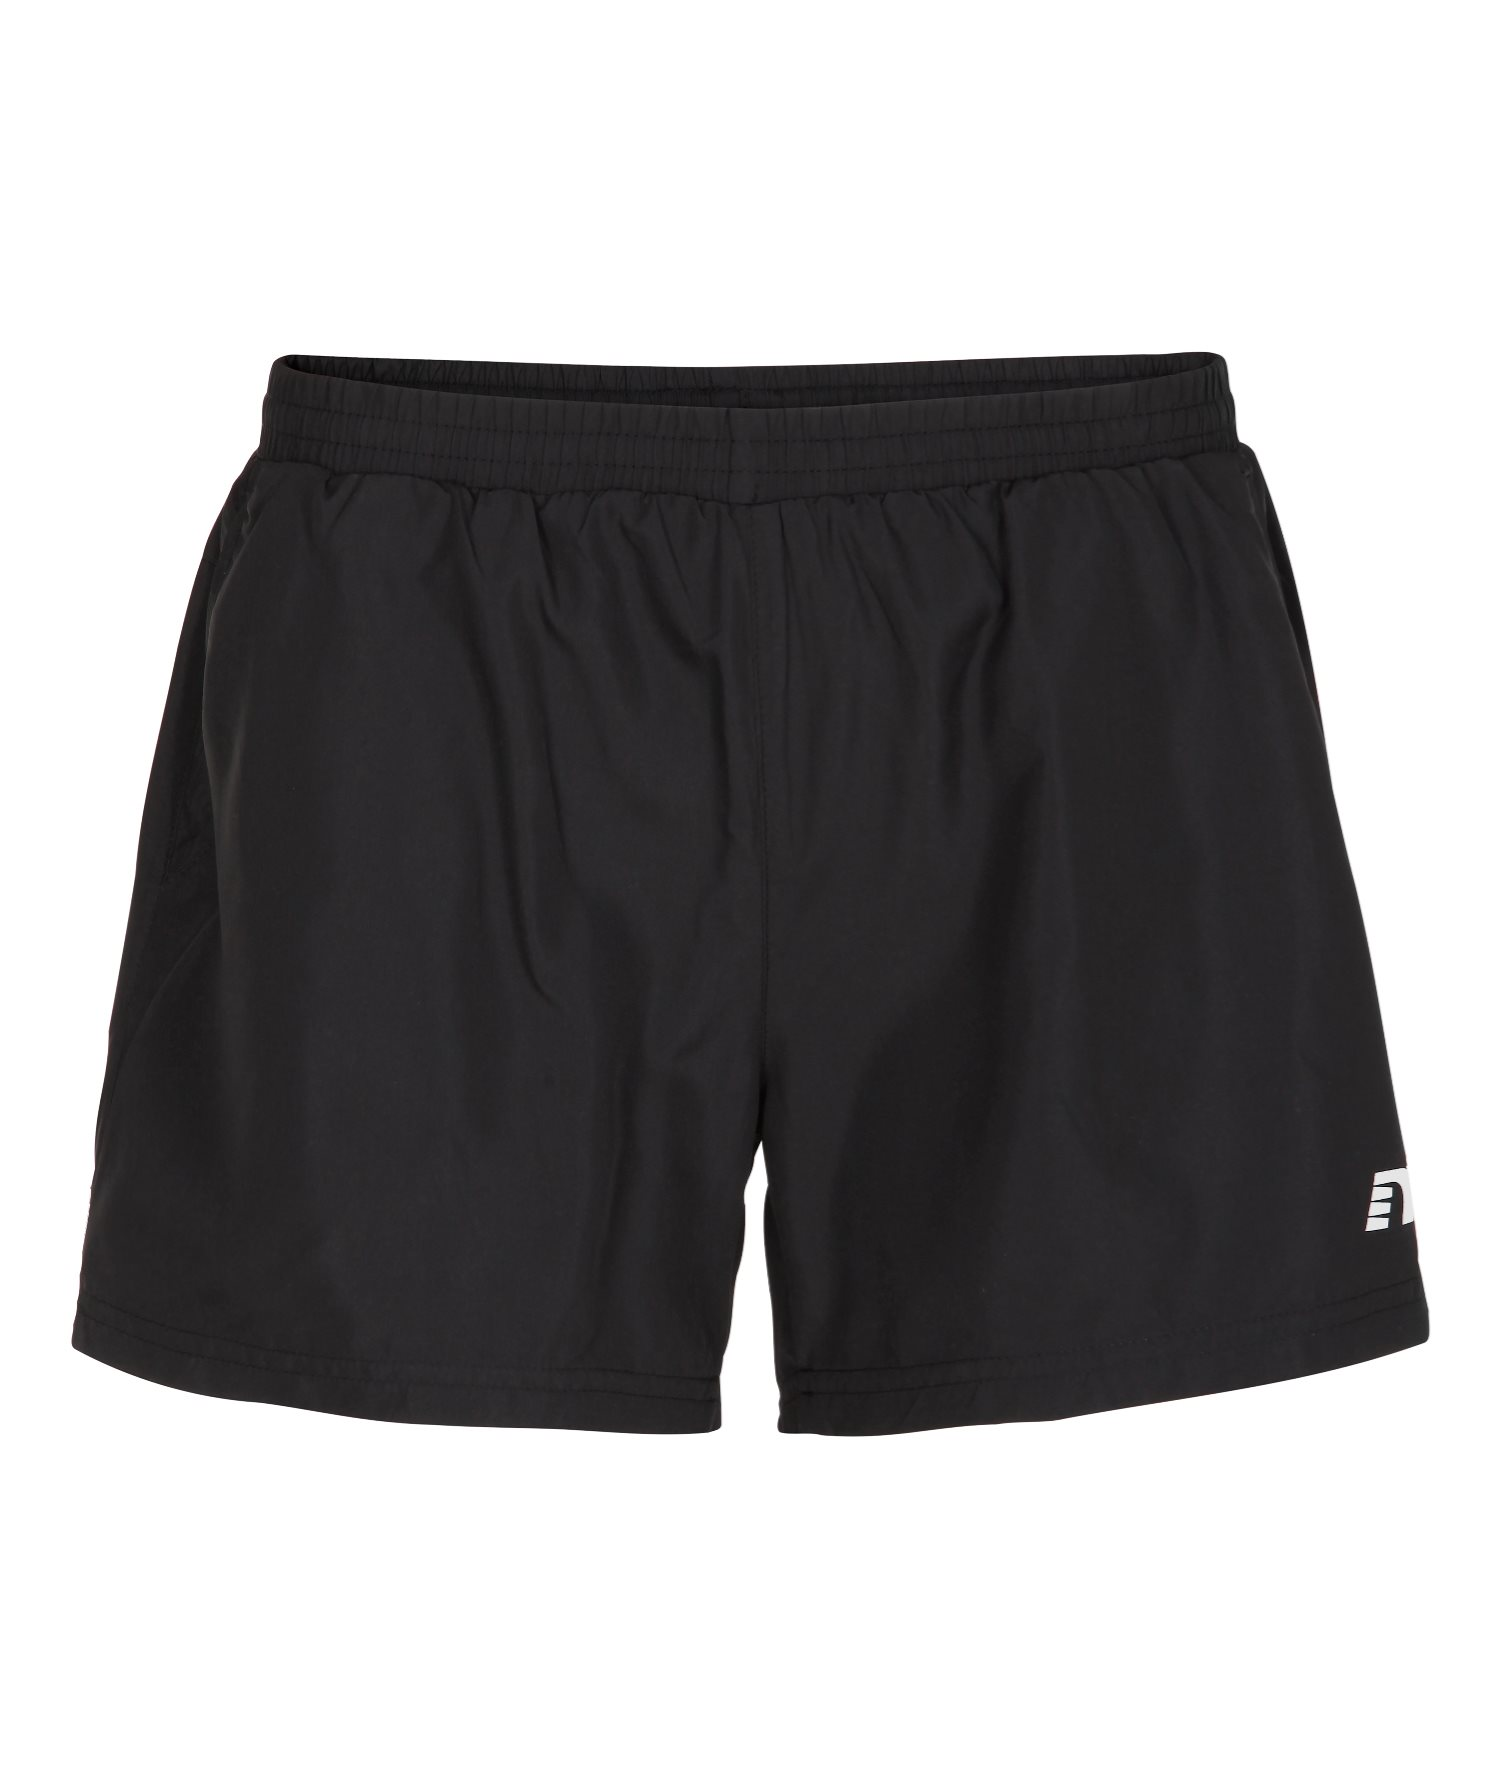 Newline Base Trail Shorts Kinder